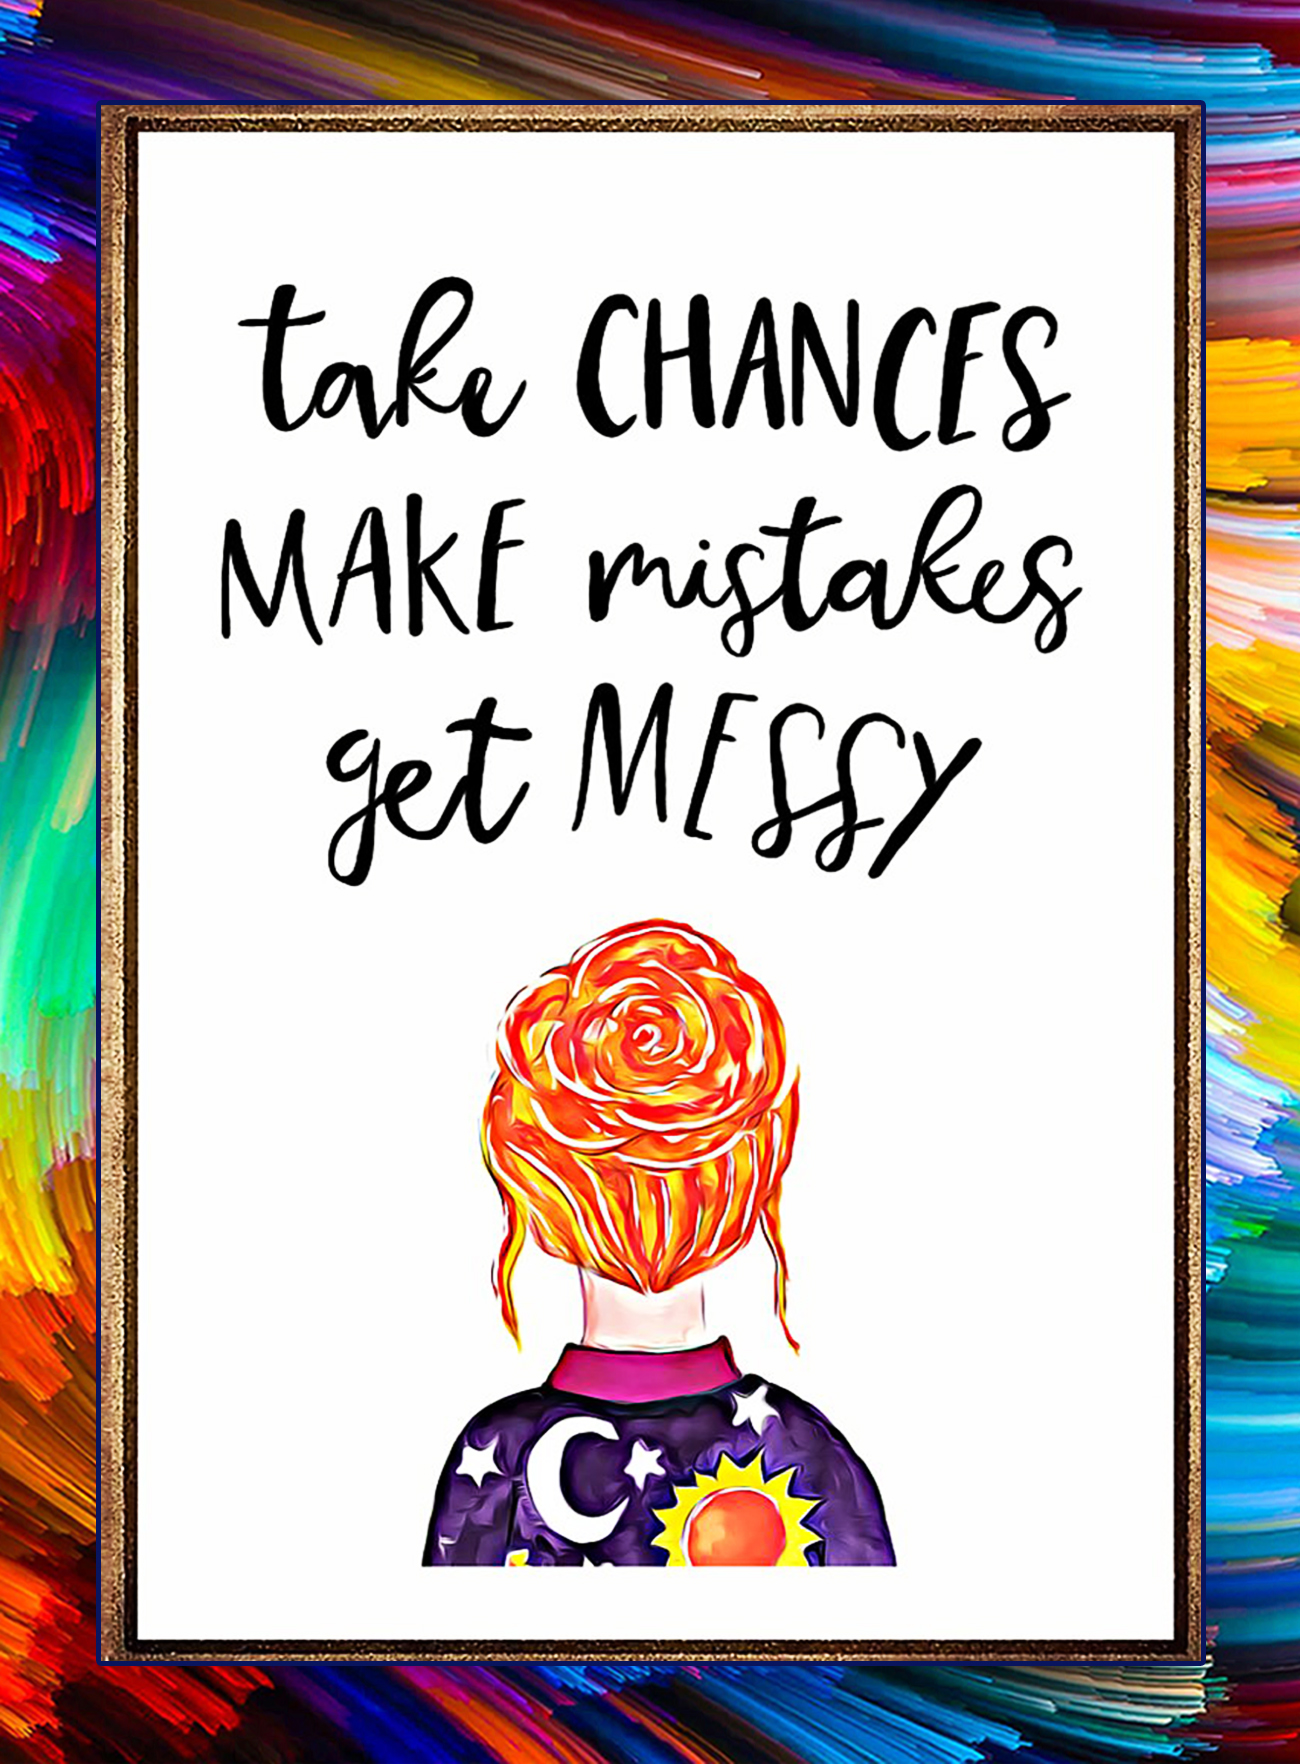 Take chances make mistakes get messy poster - A4